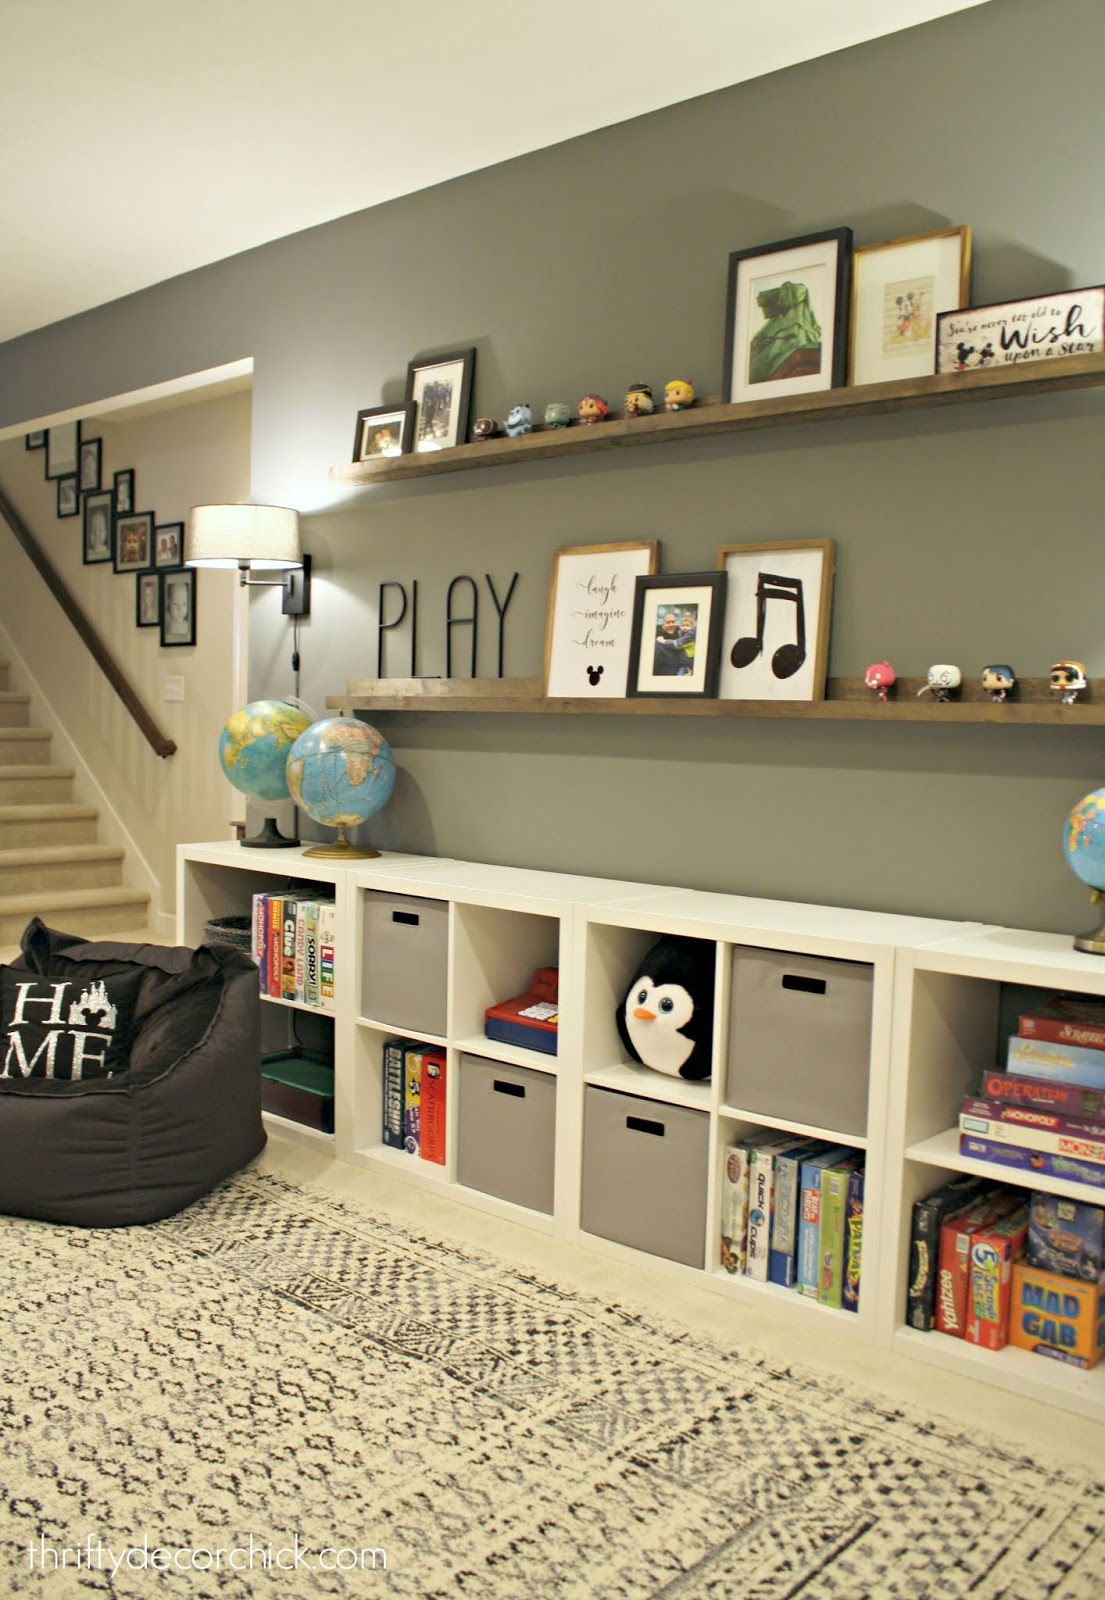 IKEA cubbies and bookshelves on wall